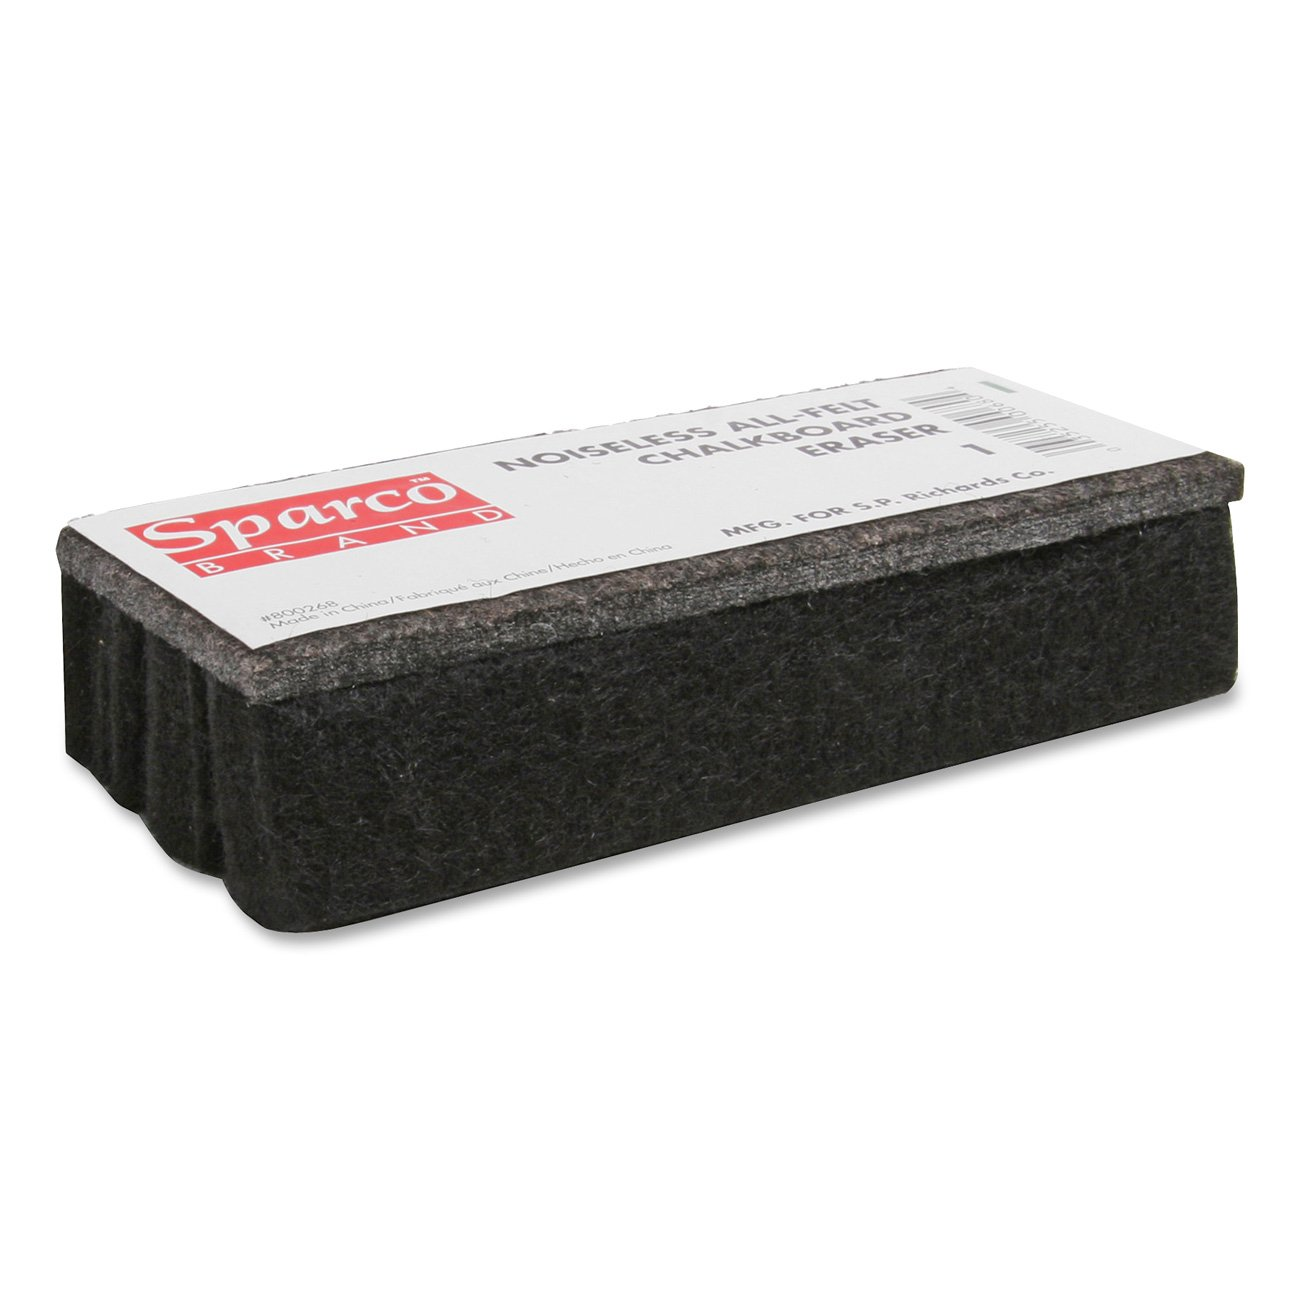 Sparco SPR1 Chalkboard Eraser, All-Felt, Dustless, Black S.P. Richards Company